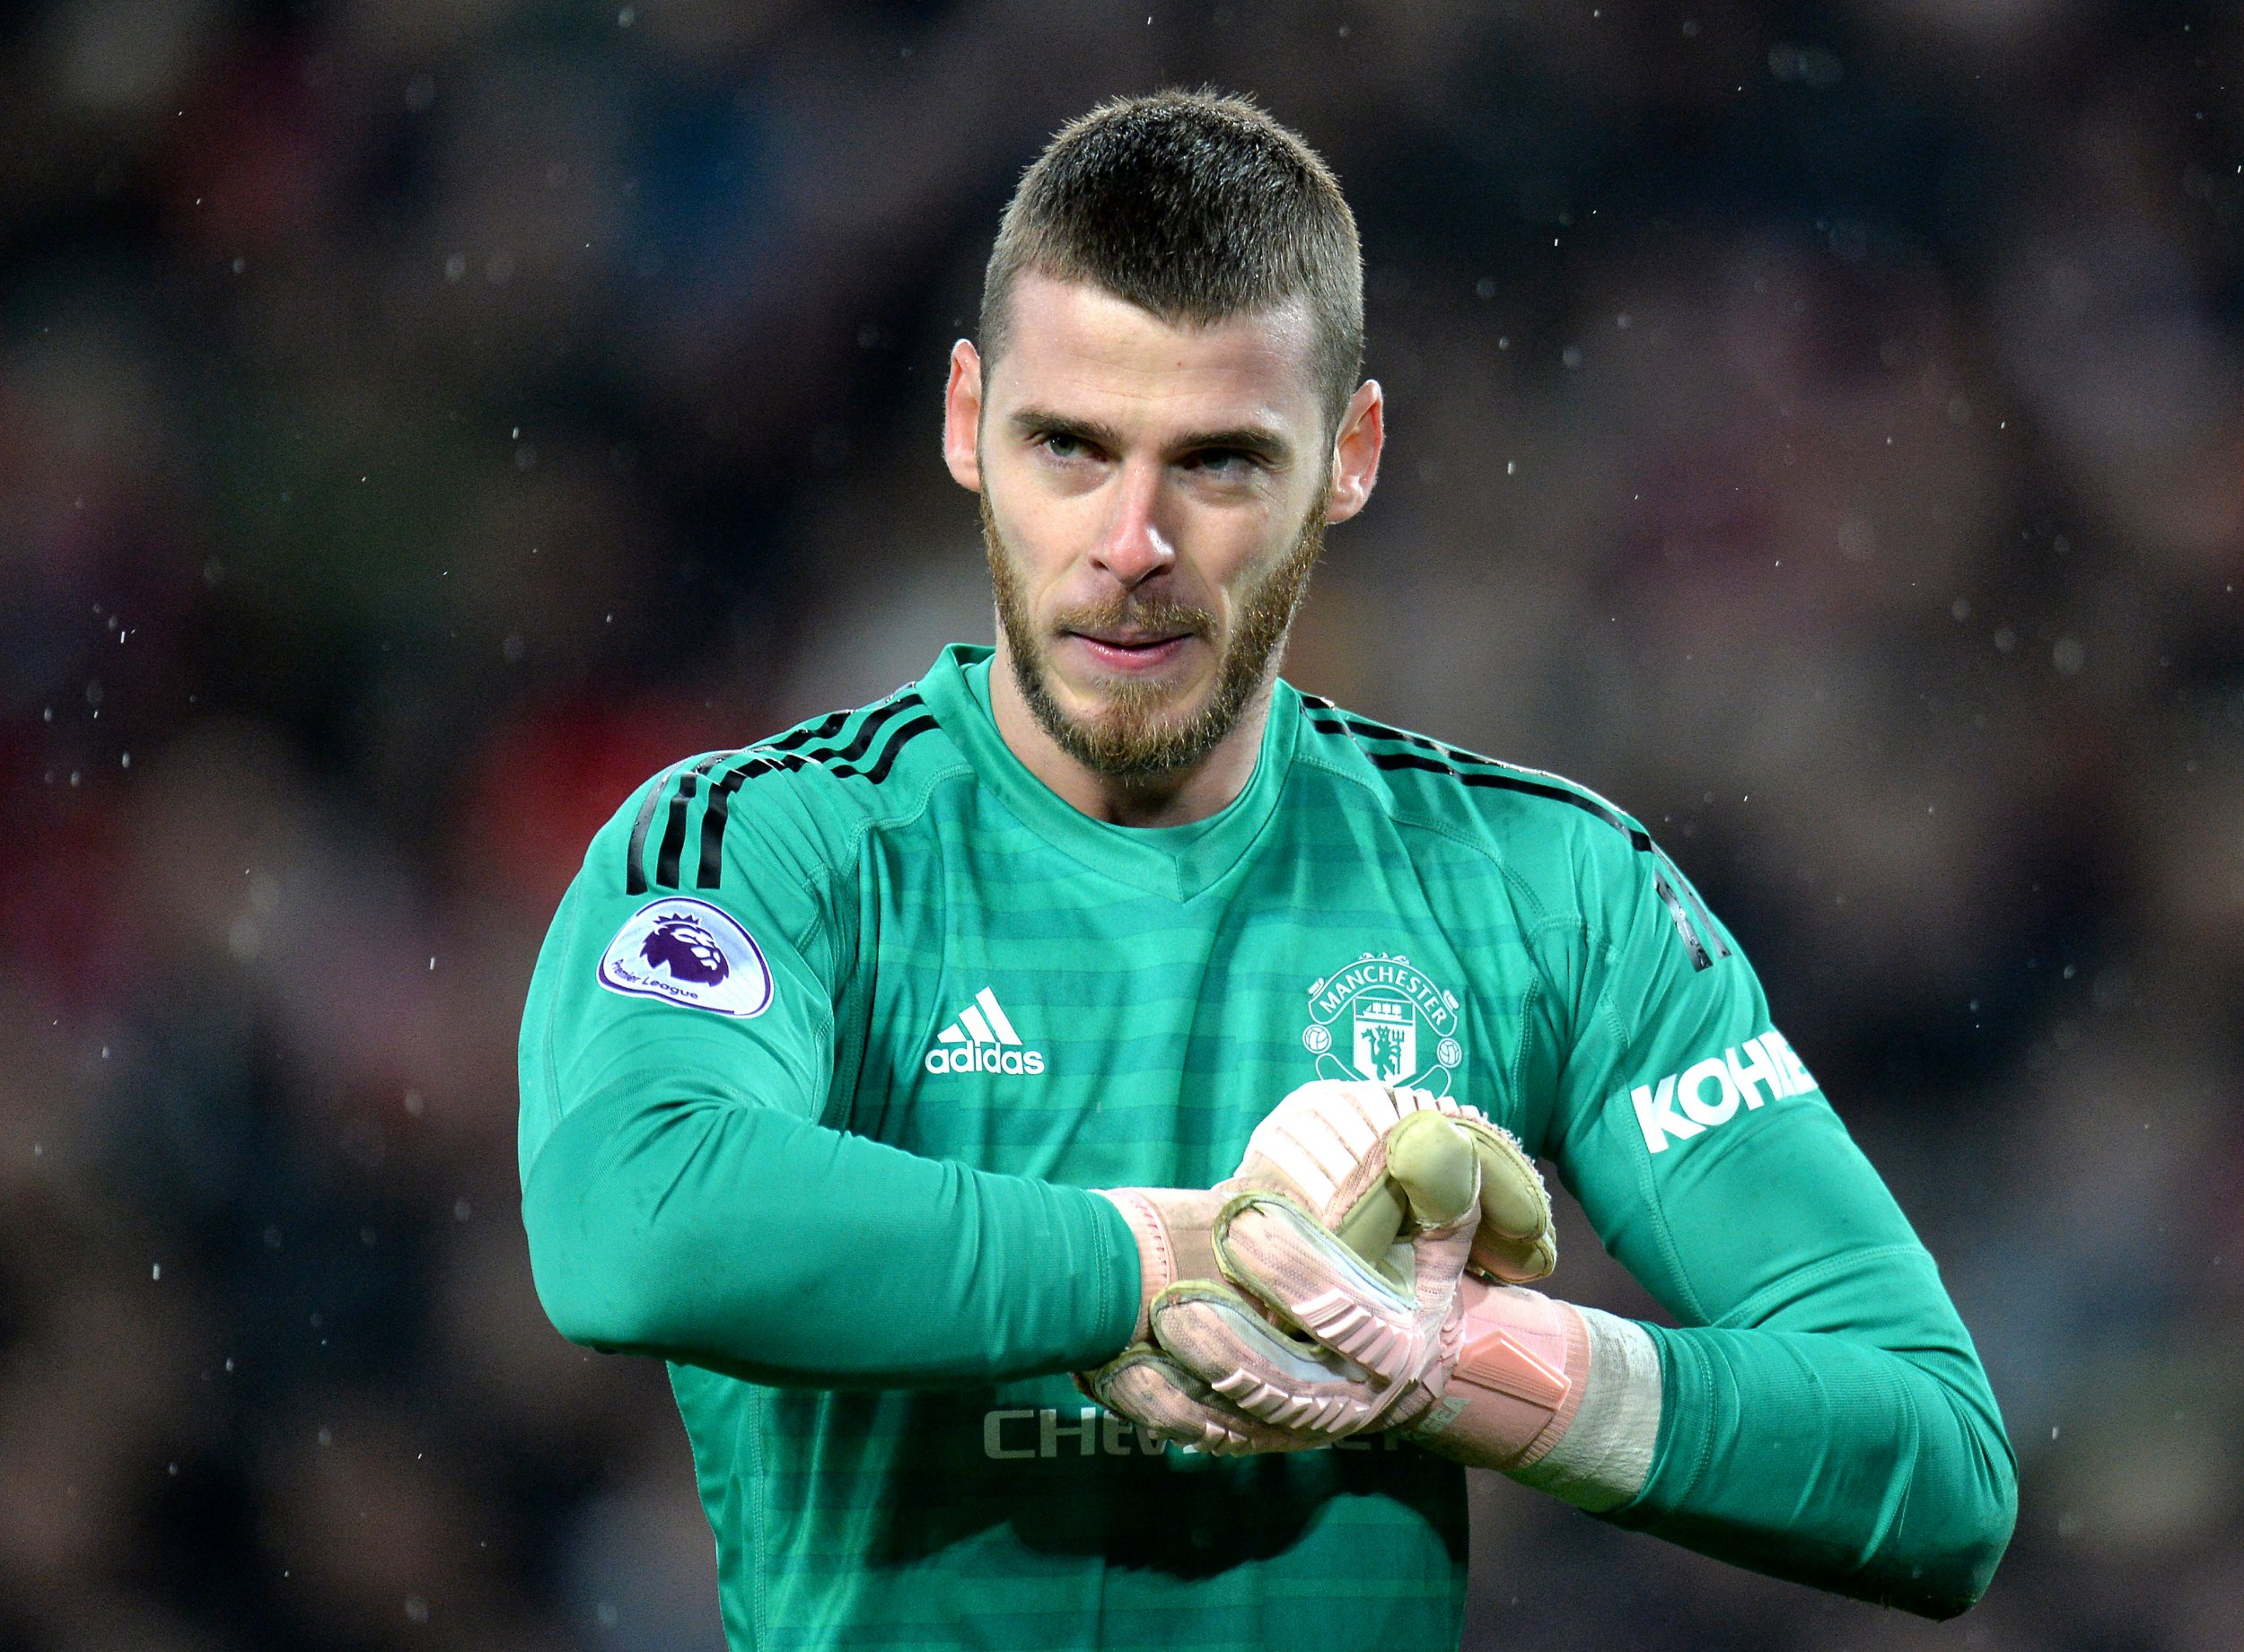 epa07235918 Manchester United goalkeeper David De Gea reacts during the English Premier League soccer match between Liverpool FC and Manchester United FC at Anfield in Liverpool, Britain, 16 December 2018. EPA/PETER POWELL EDITORIAL USE ONLY. No use with unauthorized audio, video, data, fixture lists, club/league logos or 'live' services. Online in-match use limited to 120 images, no video emulation. No use in betting, games or single club/league/player publications.